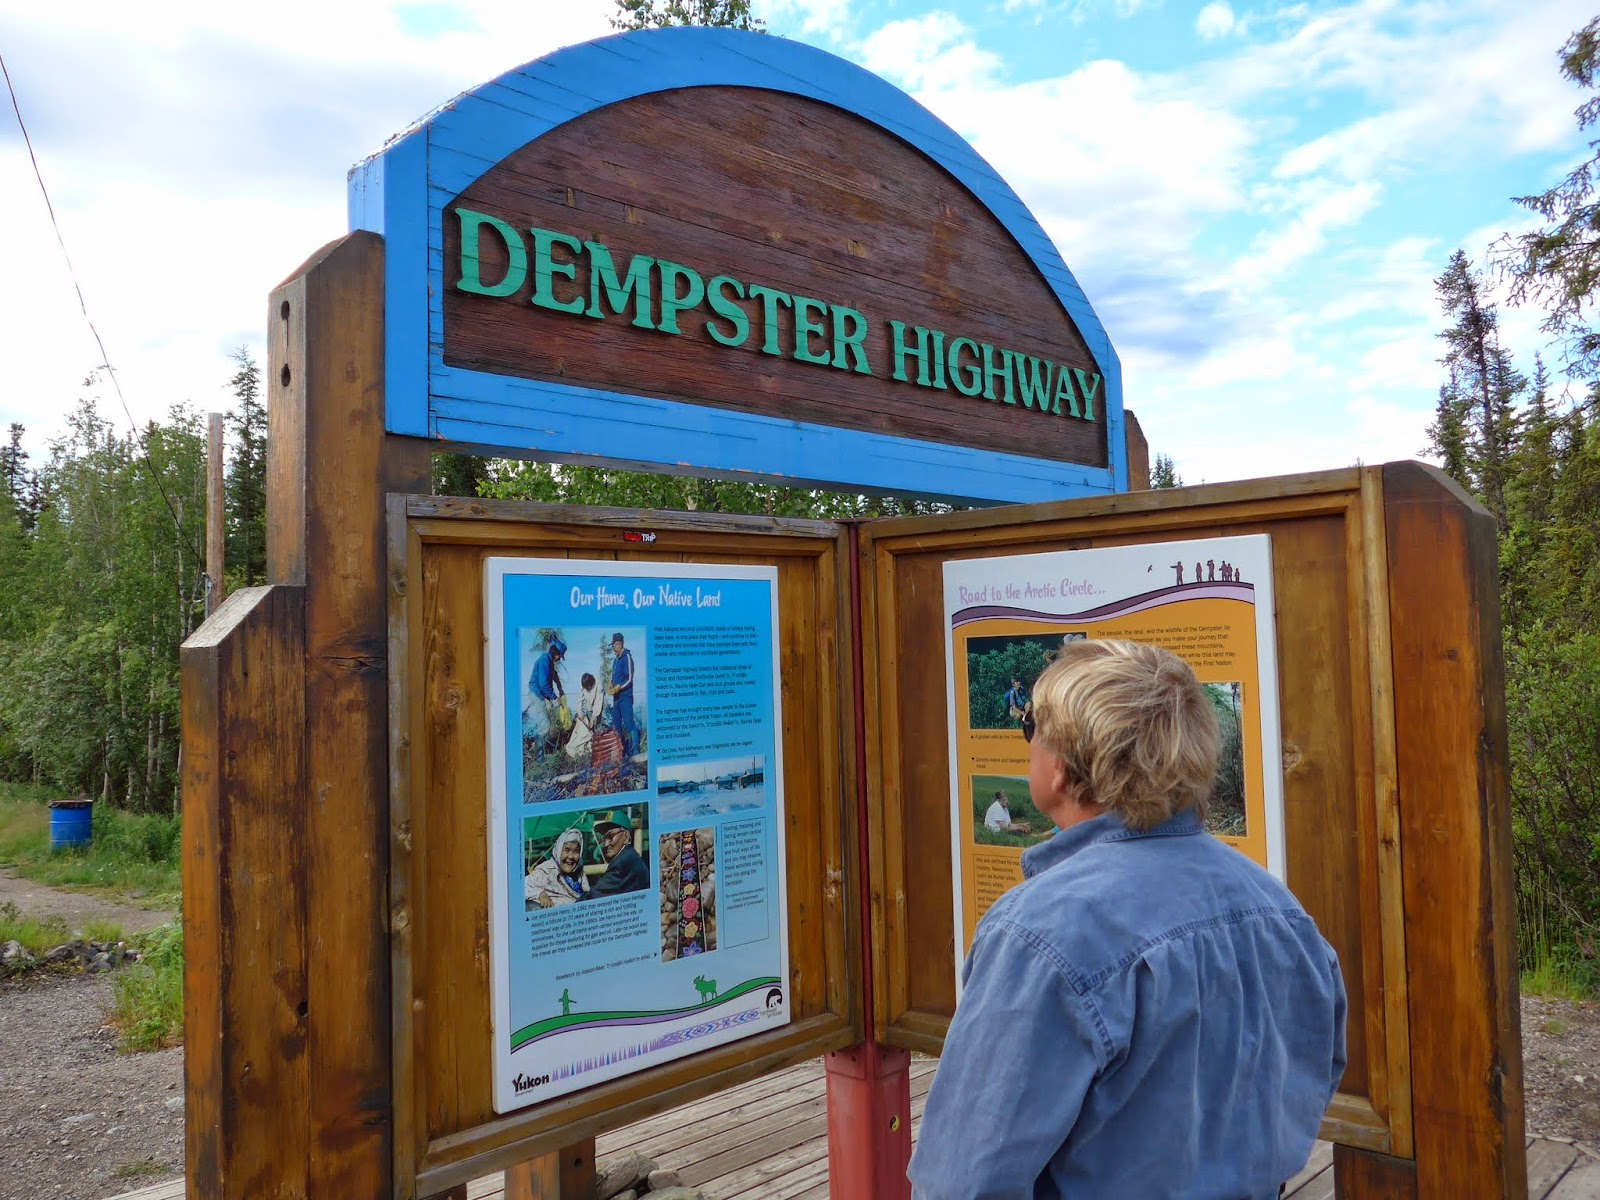 Anders at the Dempster Highway sign.